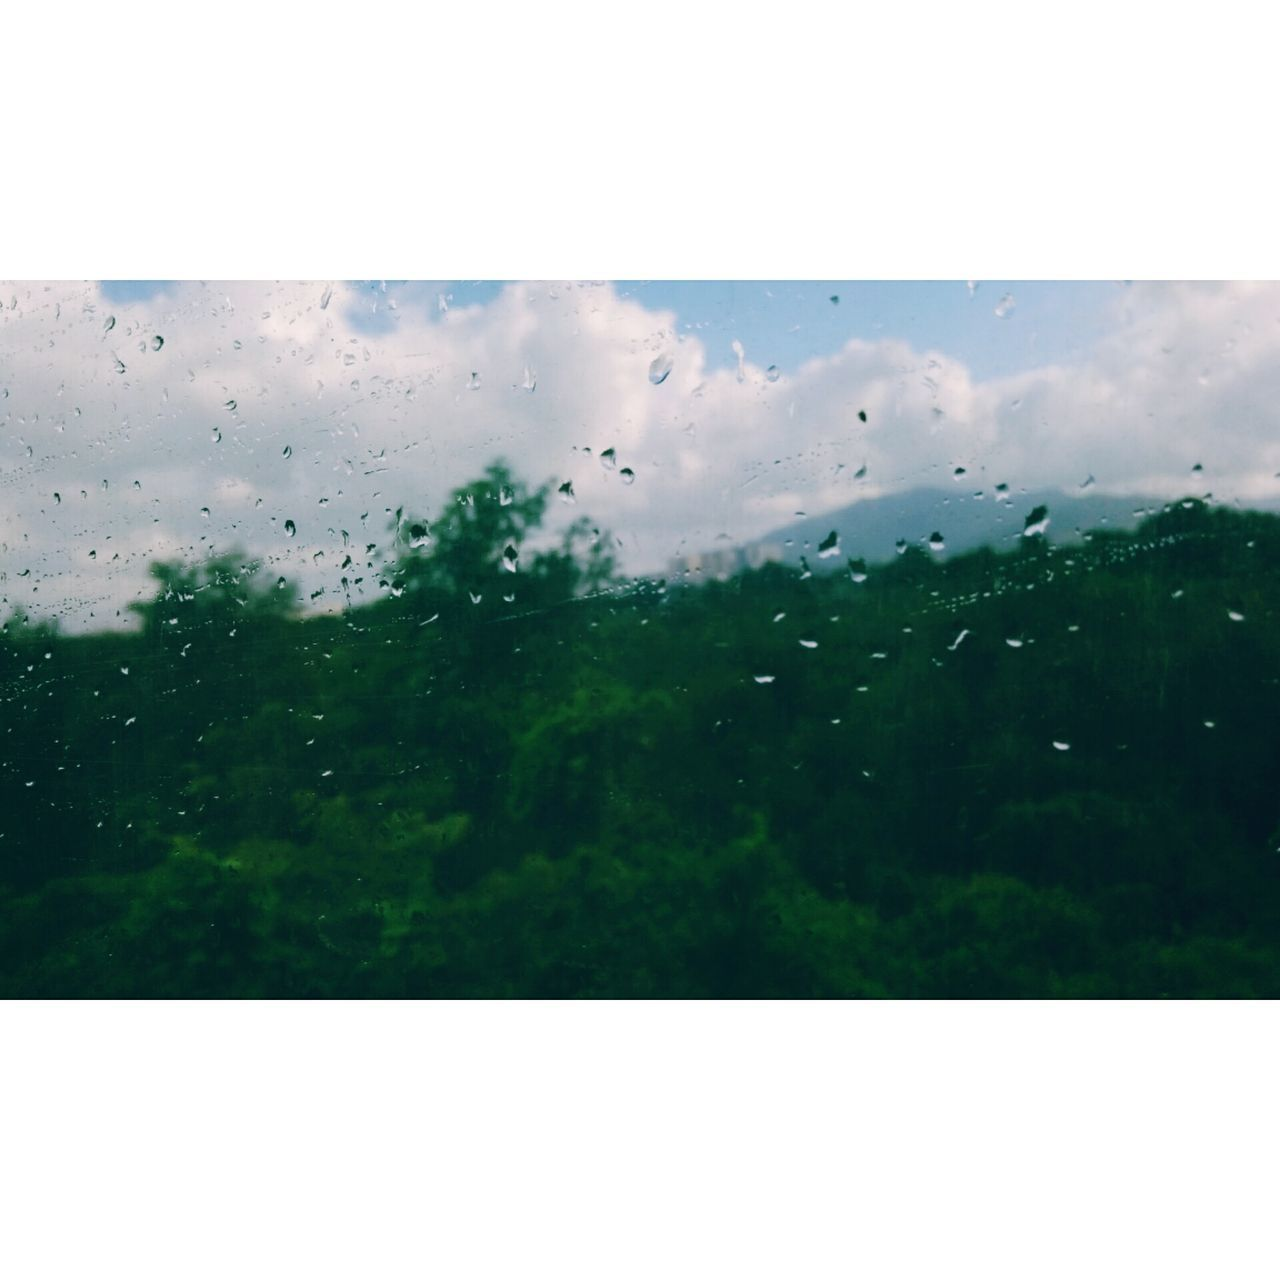 transparent, window, wet, rain, water, glass - material, drop, no people, raindrop, nature, day, close-up, condensation, indoors, sky, full frame, backgrounds, beauty in nature, freshness, airplane wing